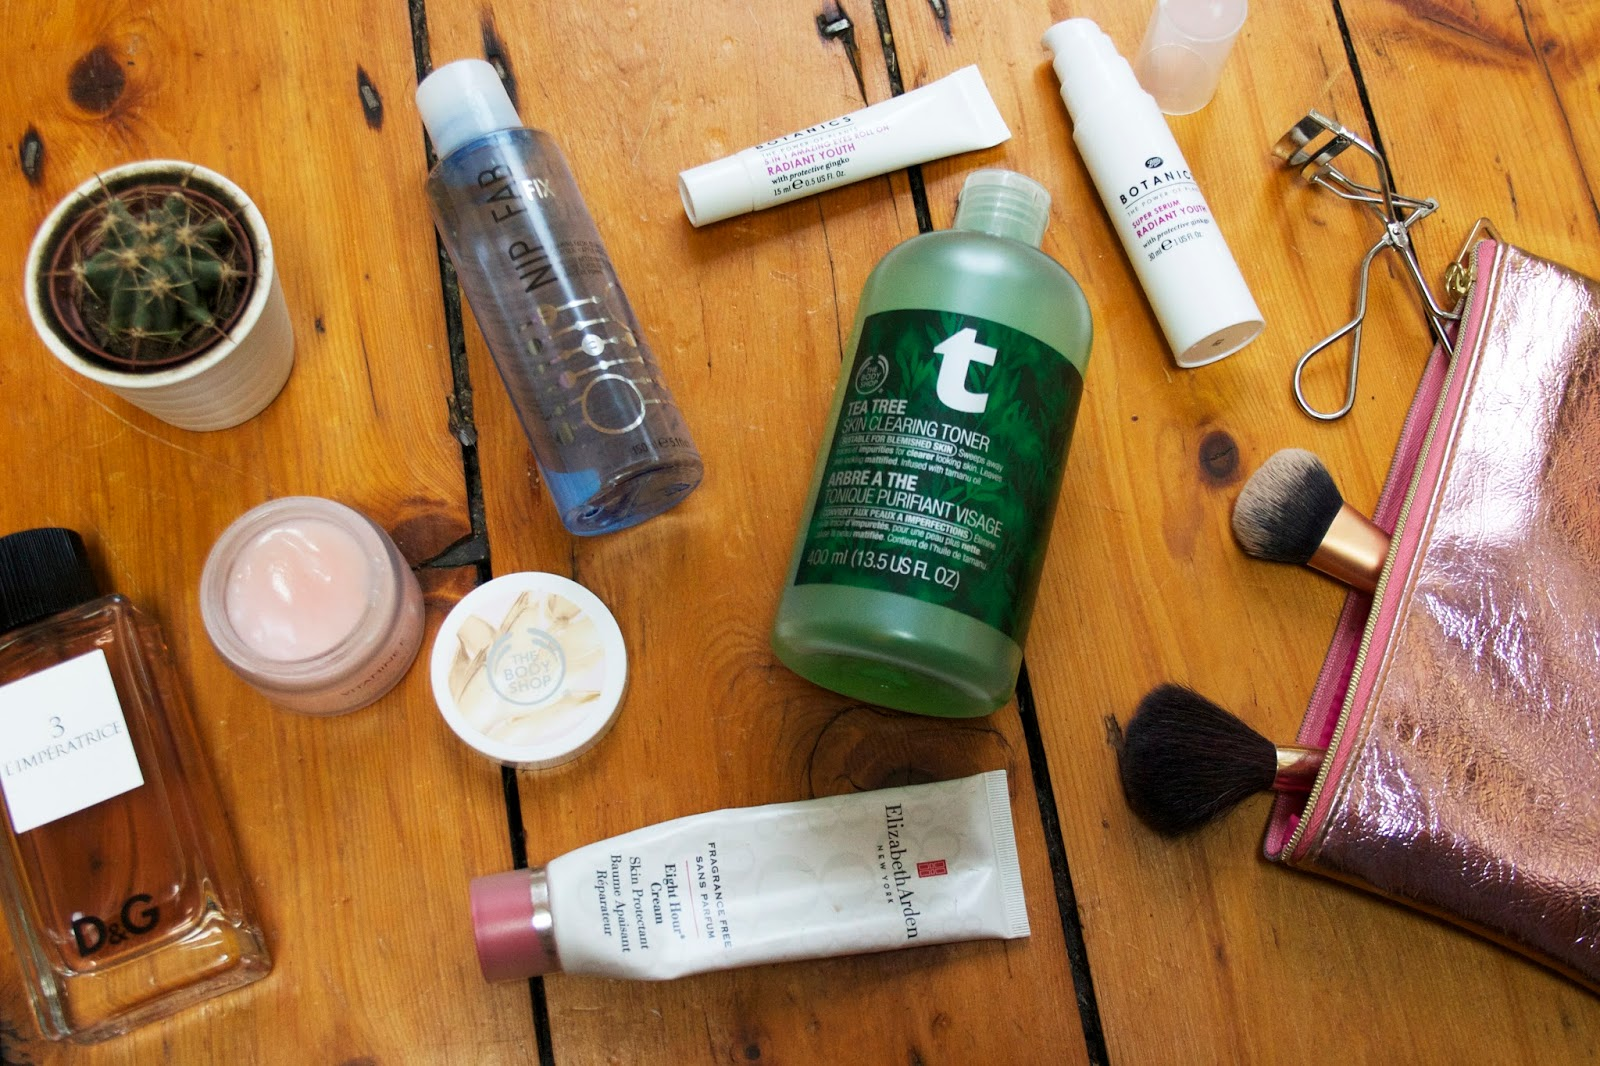 My morning skincare routine for oily or combination skin types